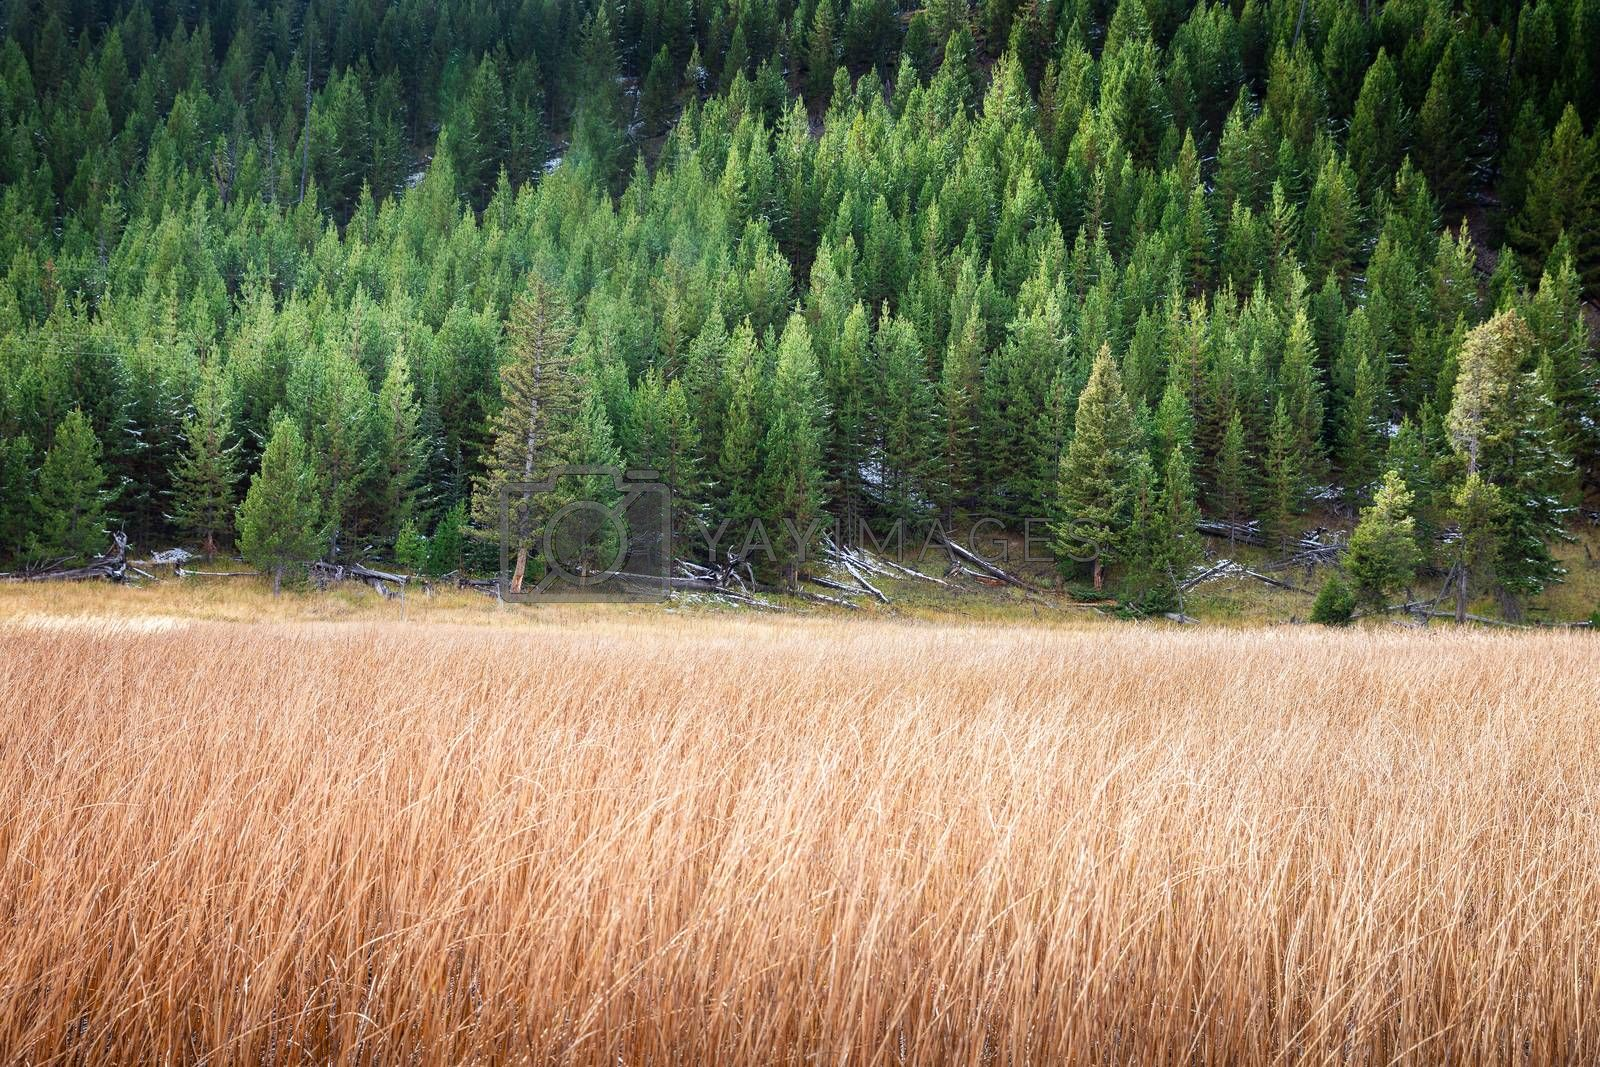 Two tones of orange grass and green pine trees on hill slope inside park of Yellowstone National Park, Wyoming, USA.